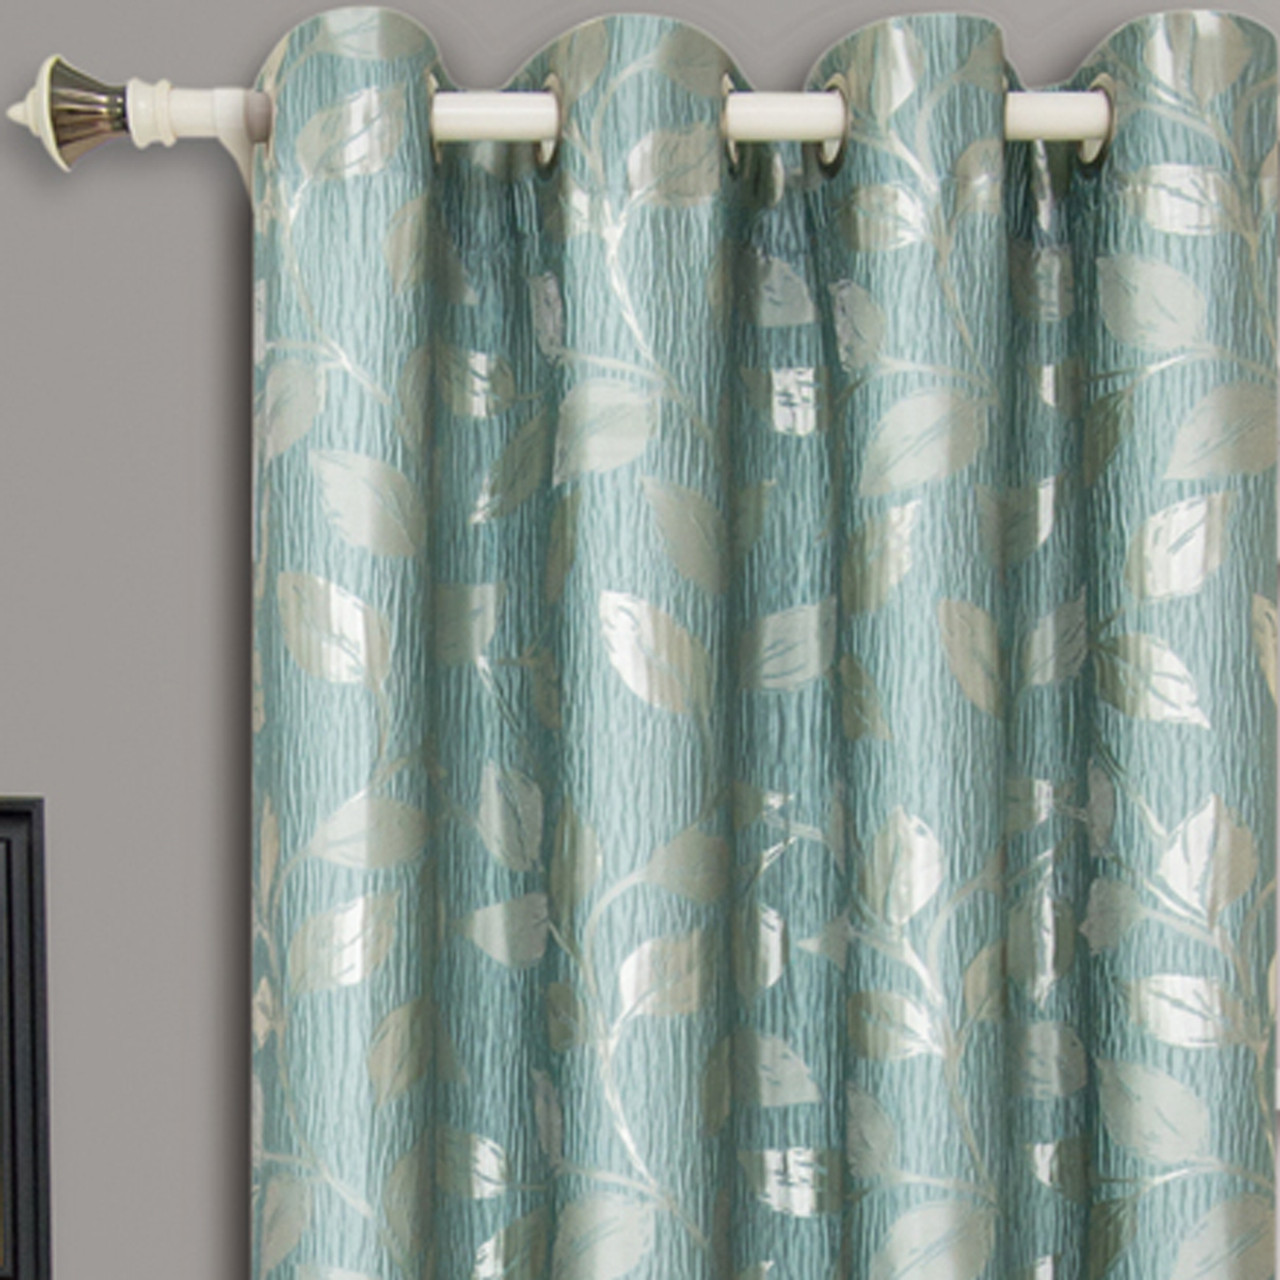 ... Charlotte Jacquard Drapes Grommet Window Curtain Panels (Pair)   Closeup Blue(Aqua ...